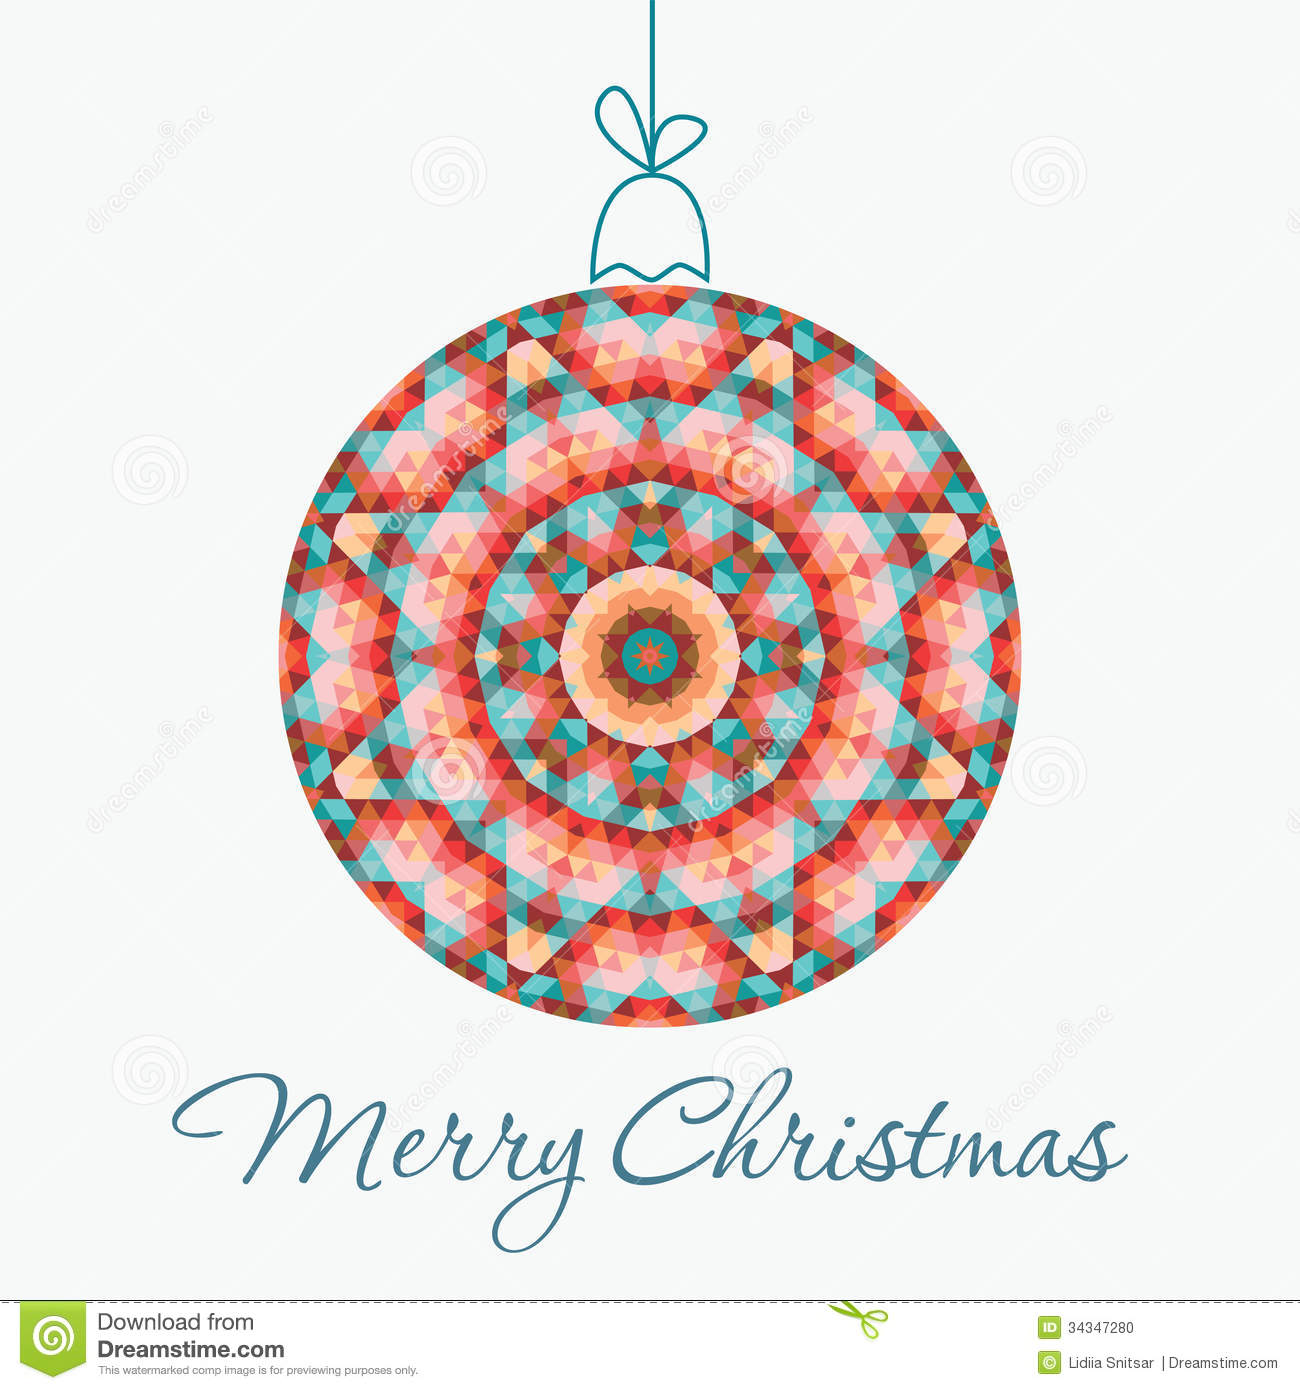 Merry Christmas Greeting Card with snowball made of triangles ...